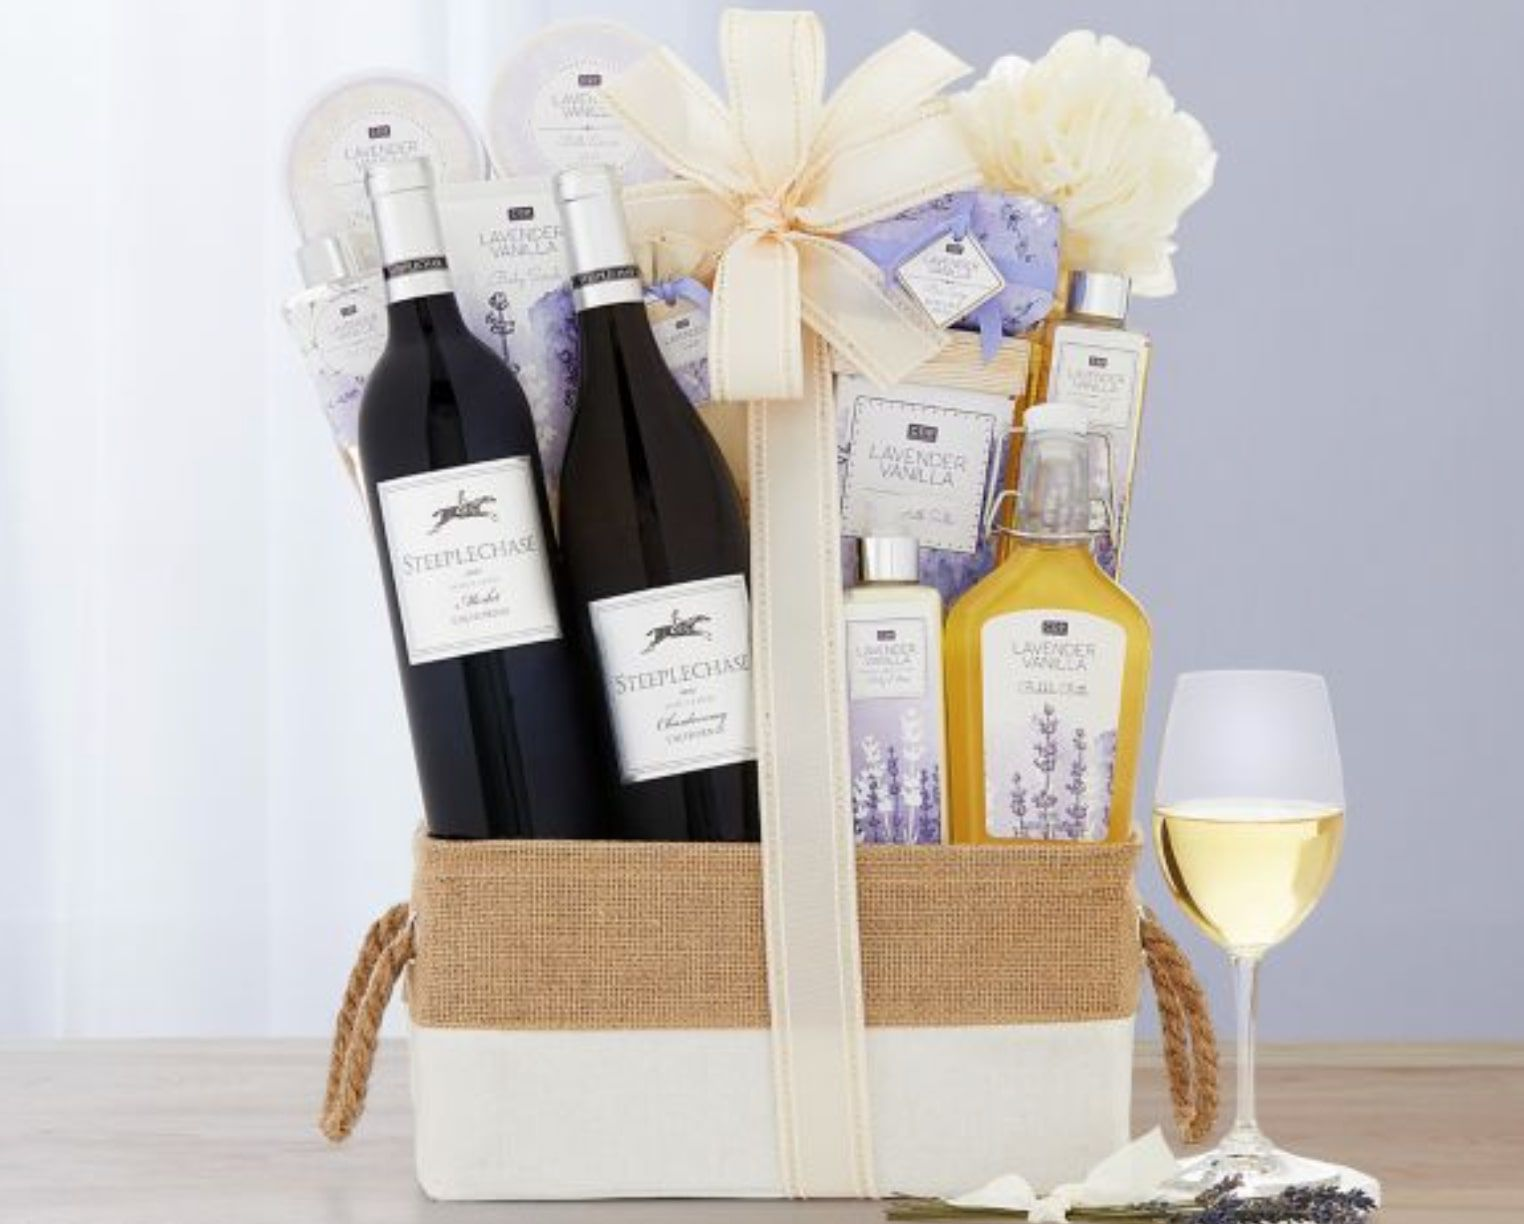 wine-country-steeplechase-vineyards-spa-collection-gift-basket